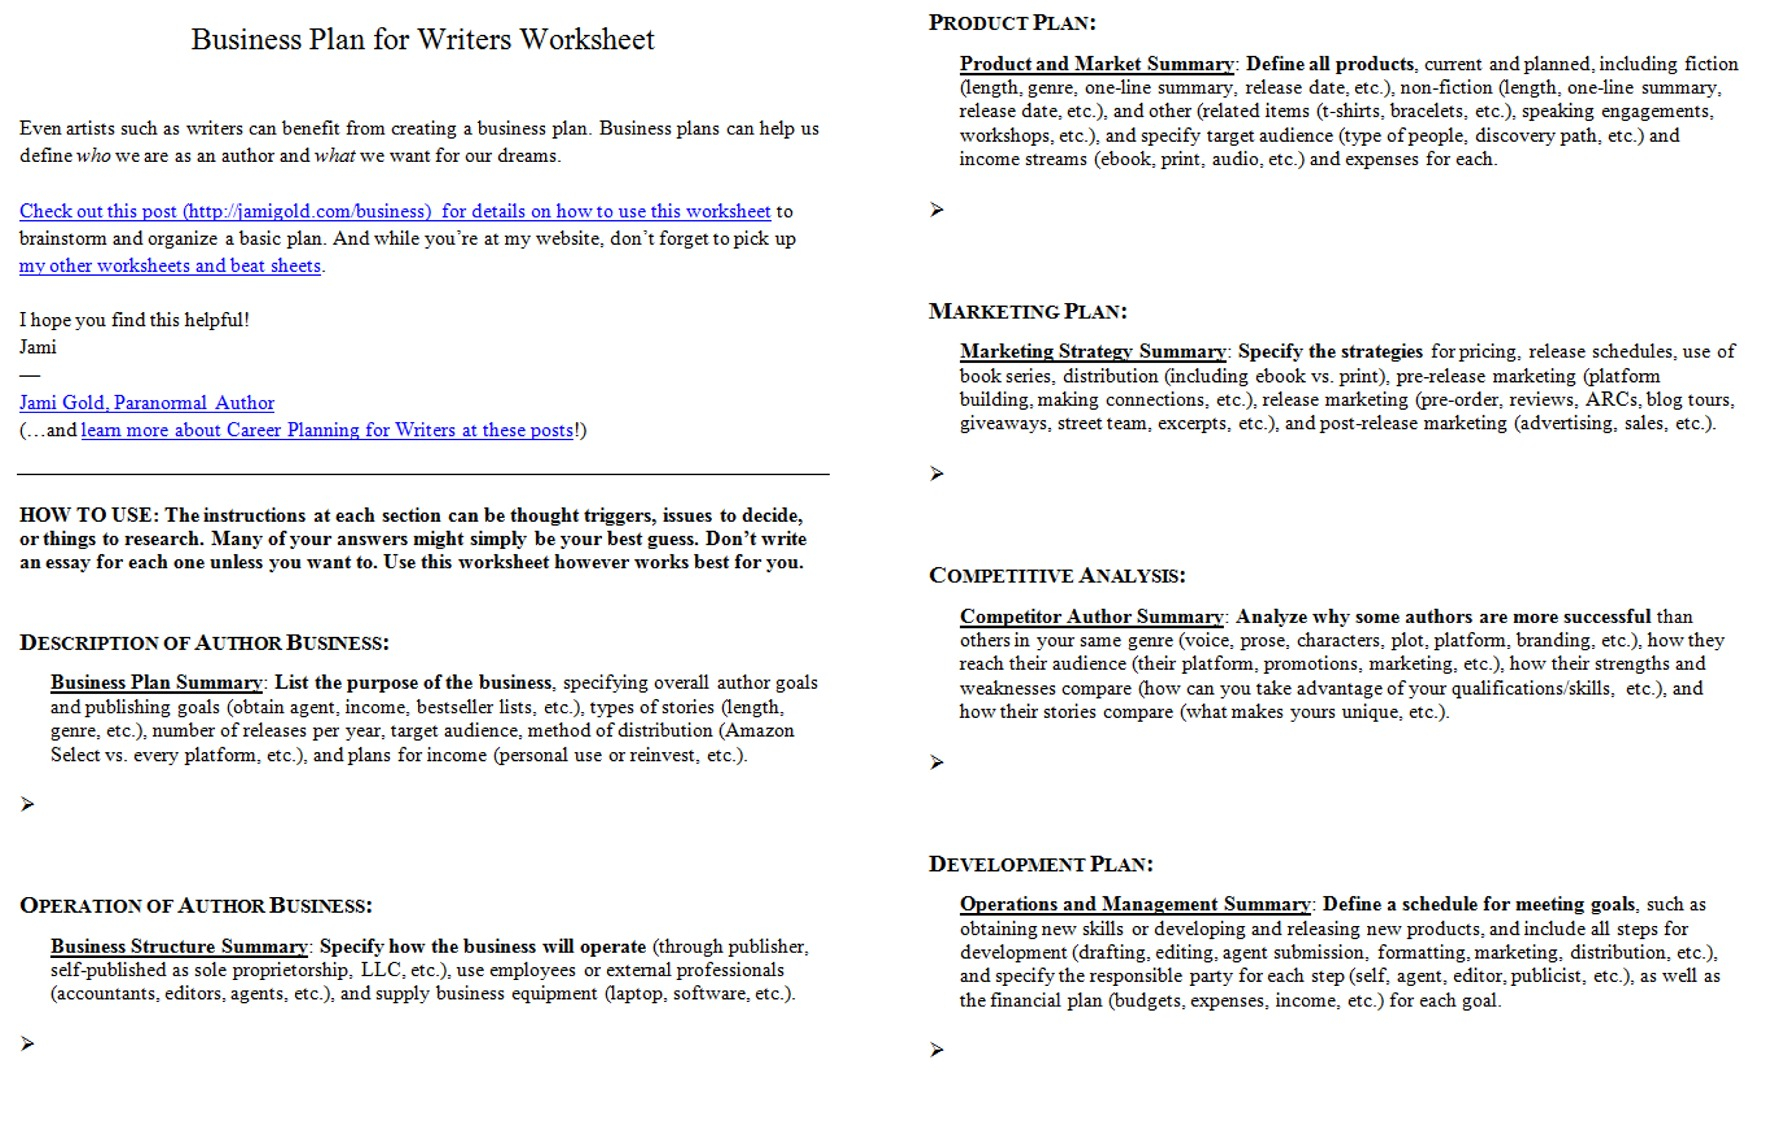 Weirdmailus  Wonderful Worksheets For Writers  Jami Gold Paranormal Author With Licious Screen Shot Of Both Pages Of The Business Plan For Writers Worksheet With Awesome Vertical Motion Problems Worksheet Also Roald Dahl Worksheets Ks In Addition Abc Writing Practice Worksheets And Vowel Team Worksheets Free As Well As Missing Number Sequence Worksheets Additionally Parts Of Plants And Their Functions Worksheet From Jamigoldcom With Weirdmailus  Licious Worksheets For Writers  Jami Gold Paranormal Author With Awesome Screen Shot Of Both Pages Of The Business Plan For Writers Worksheet And Wonderful Vertical Motion Problems Worksheet Also Roald Dahl Worksheets Ks In Addition Abc Writing Practice Worksheets From Jamigoldcom